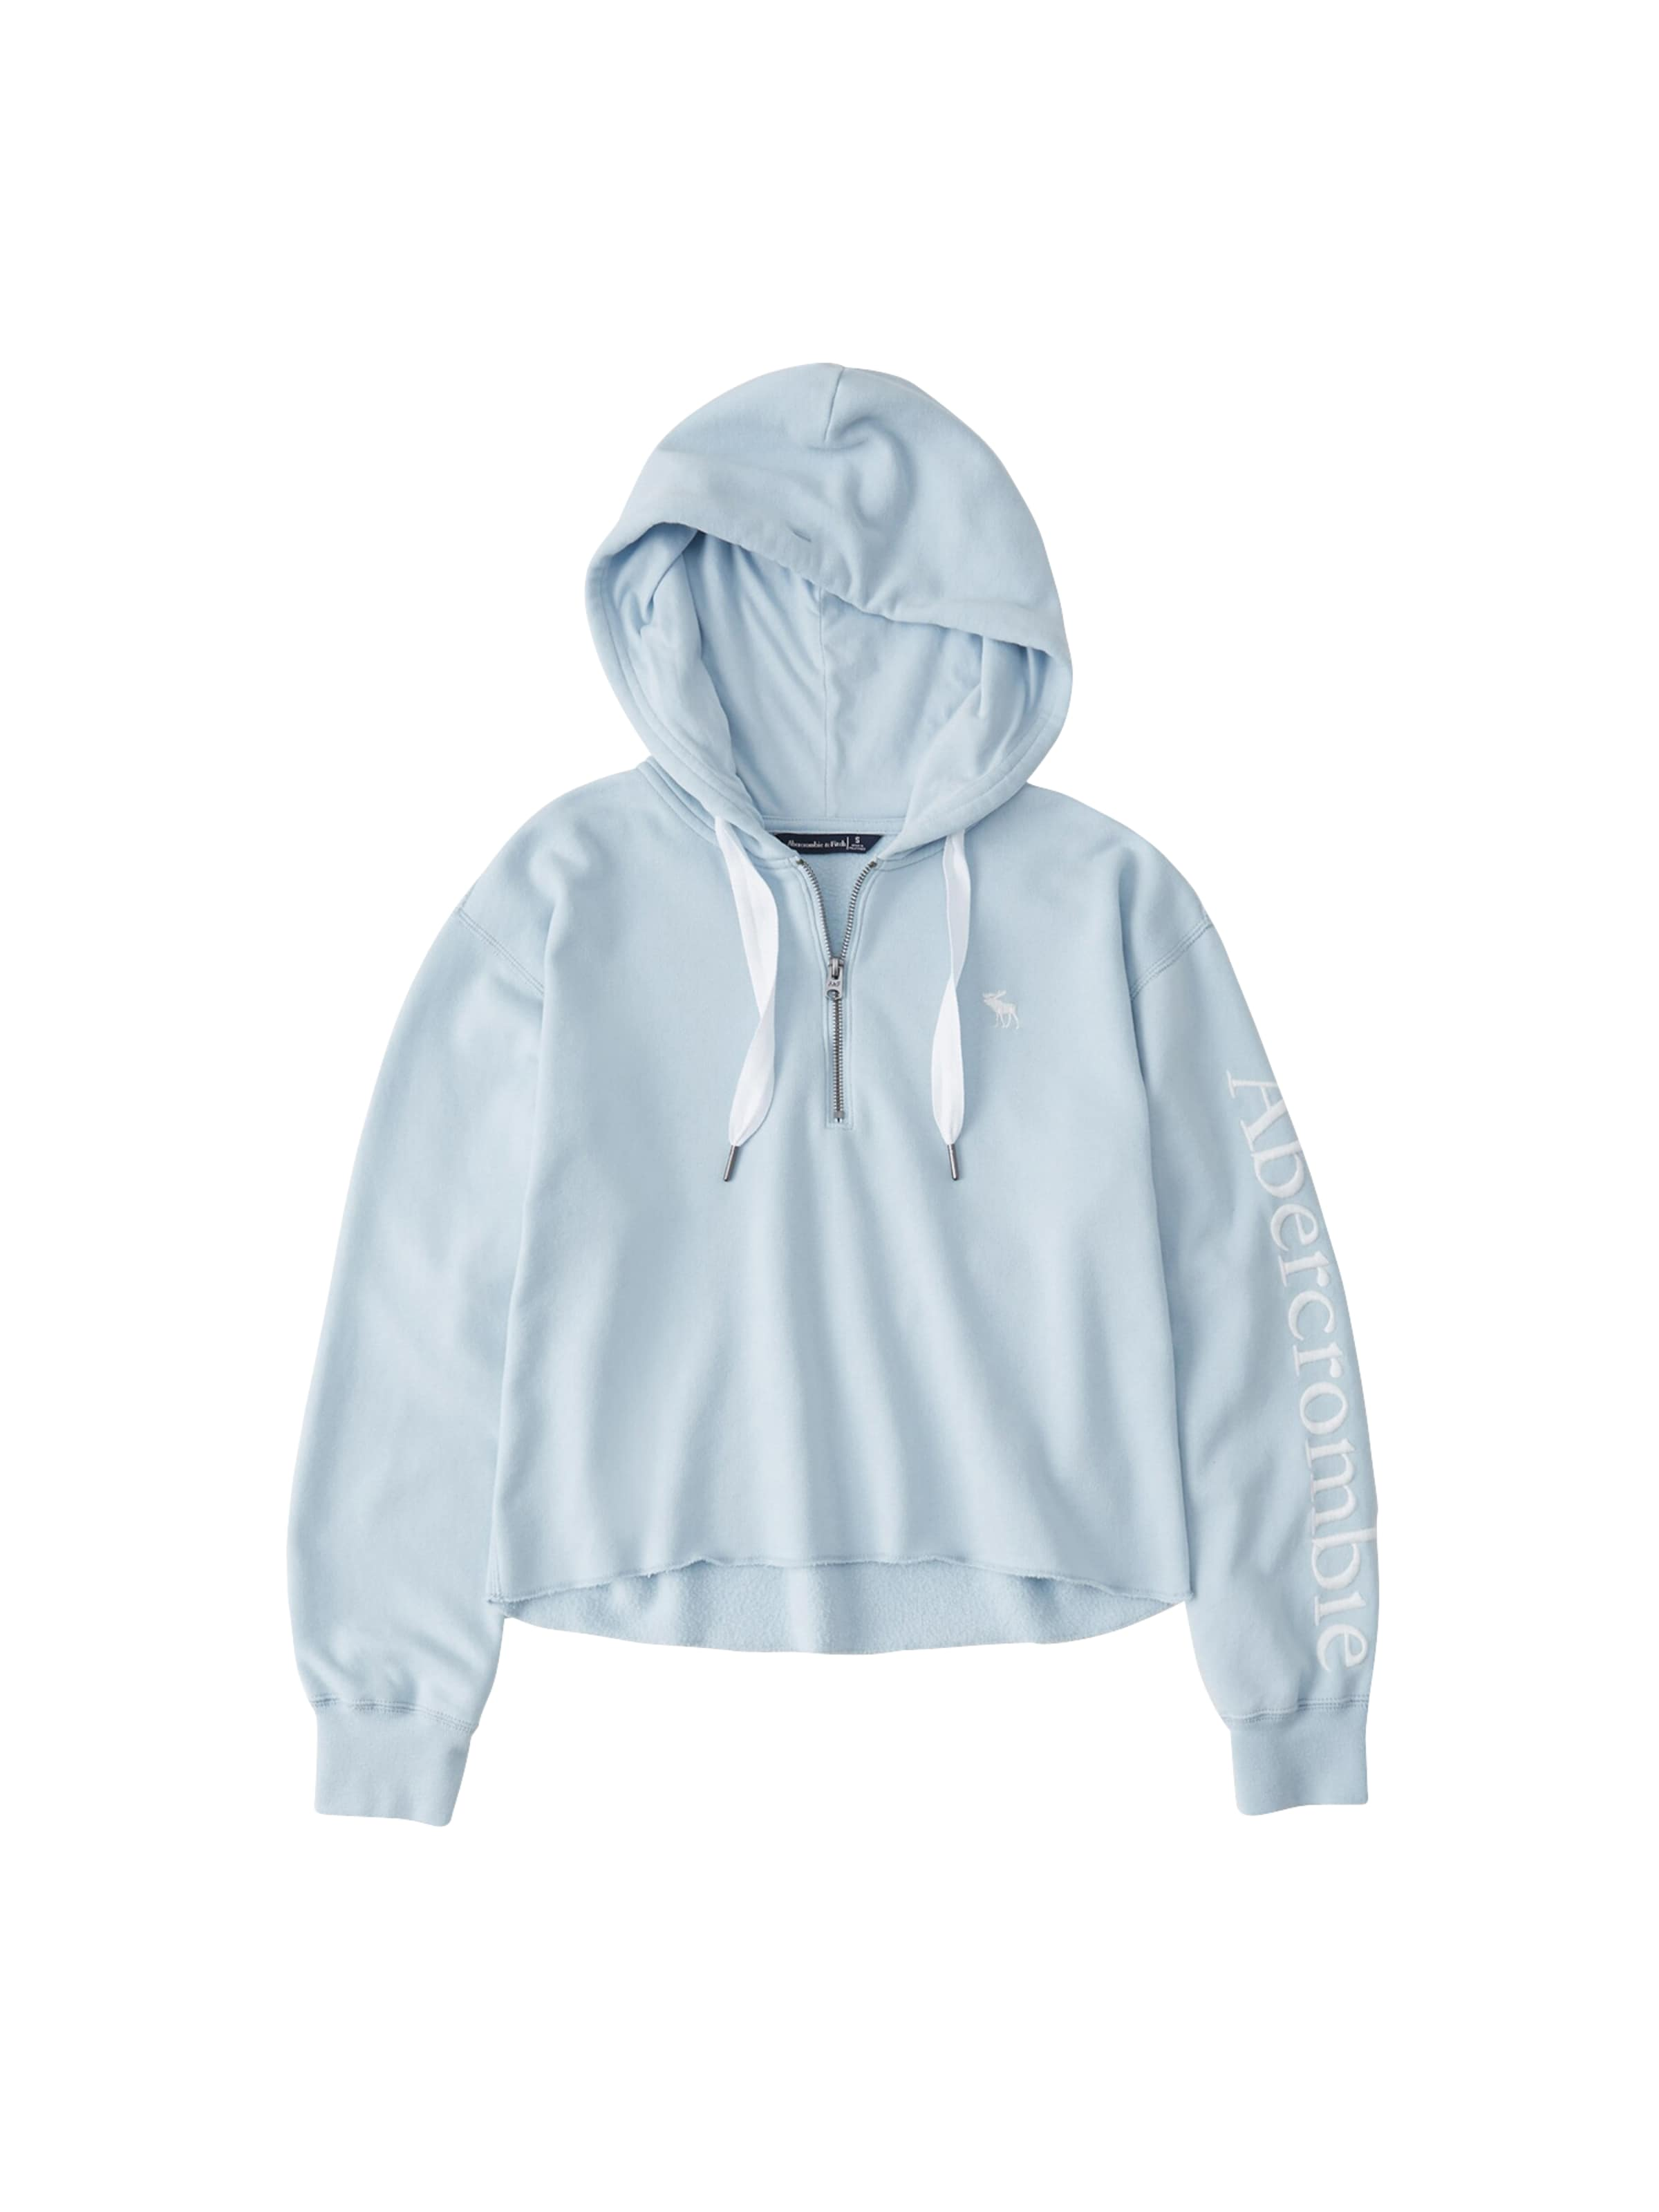 Sweat shirt Clair Fitch Abercrombieamp; Bleu En sQthCxordB